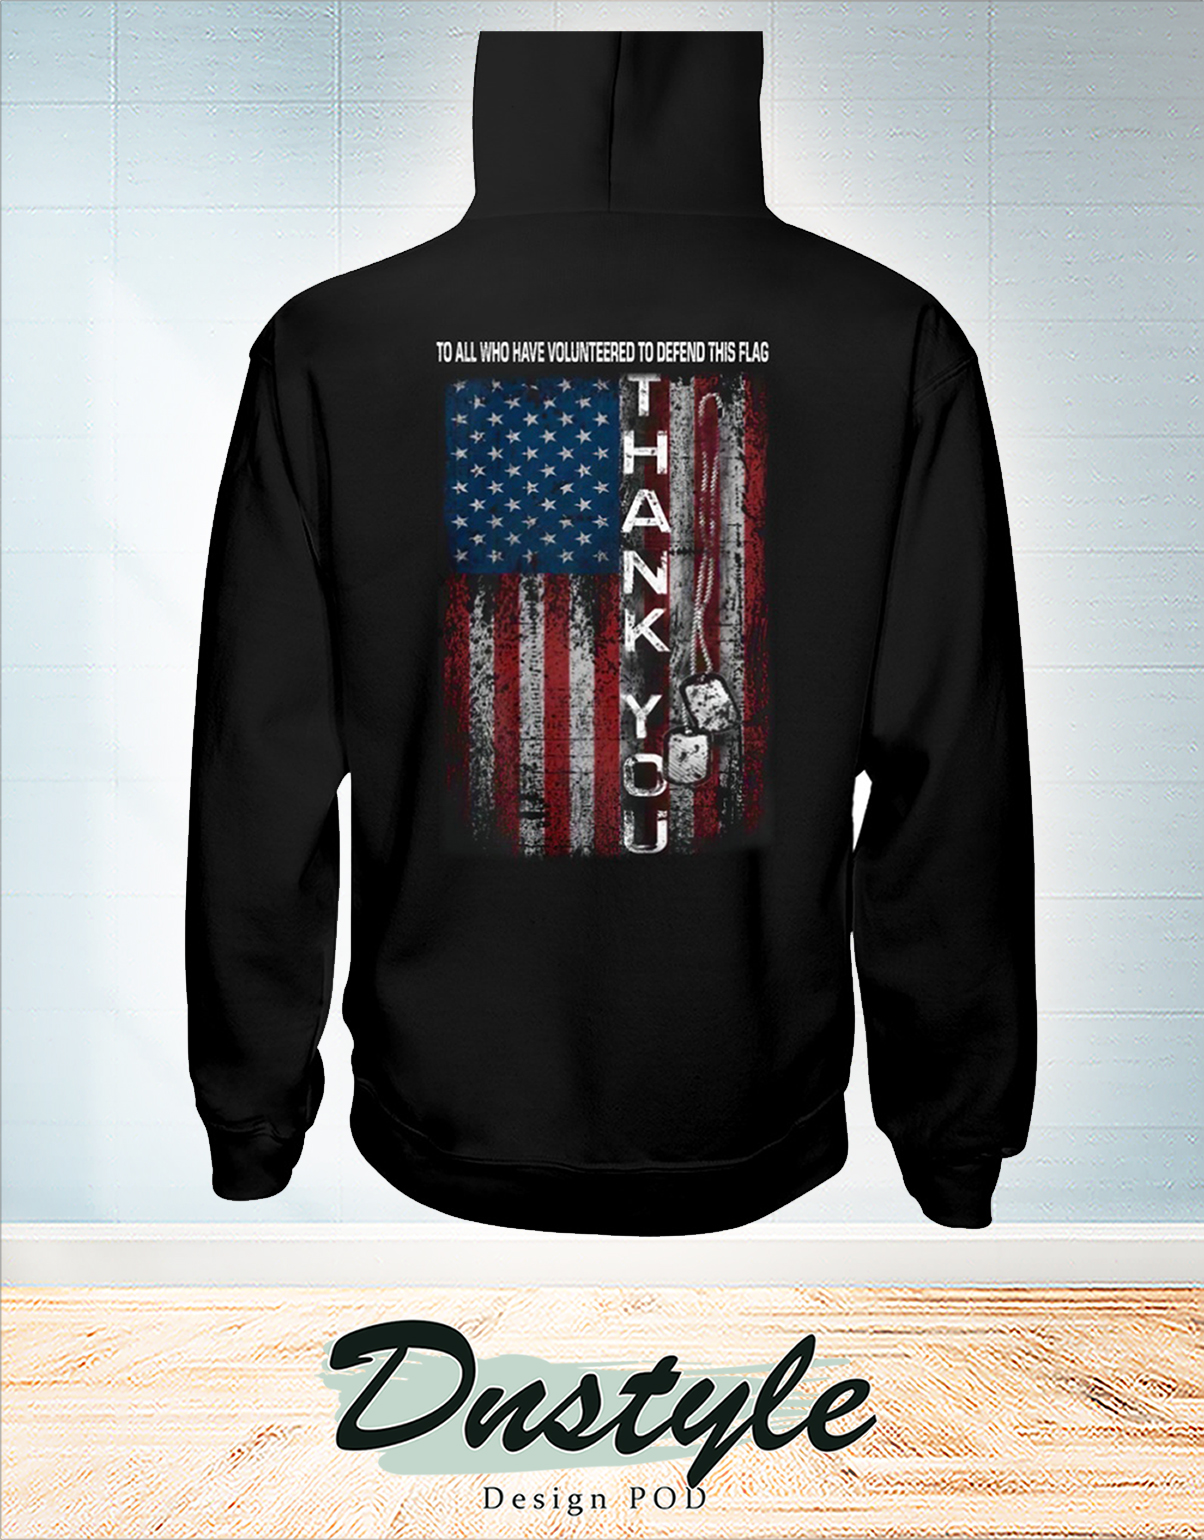 To all who have volunteered to defend this flag hoodie